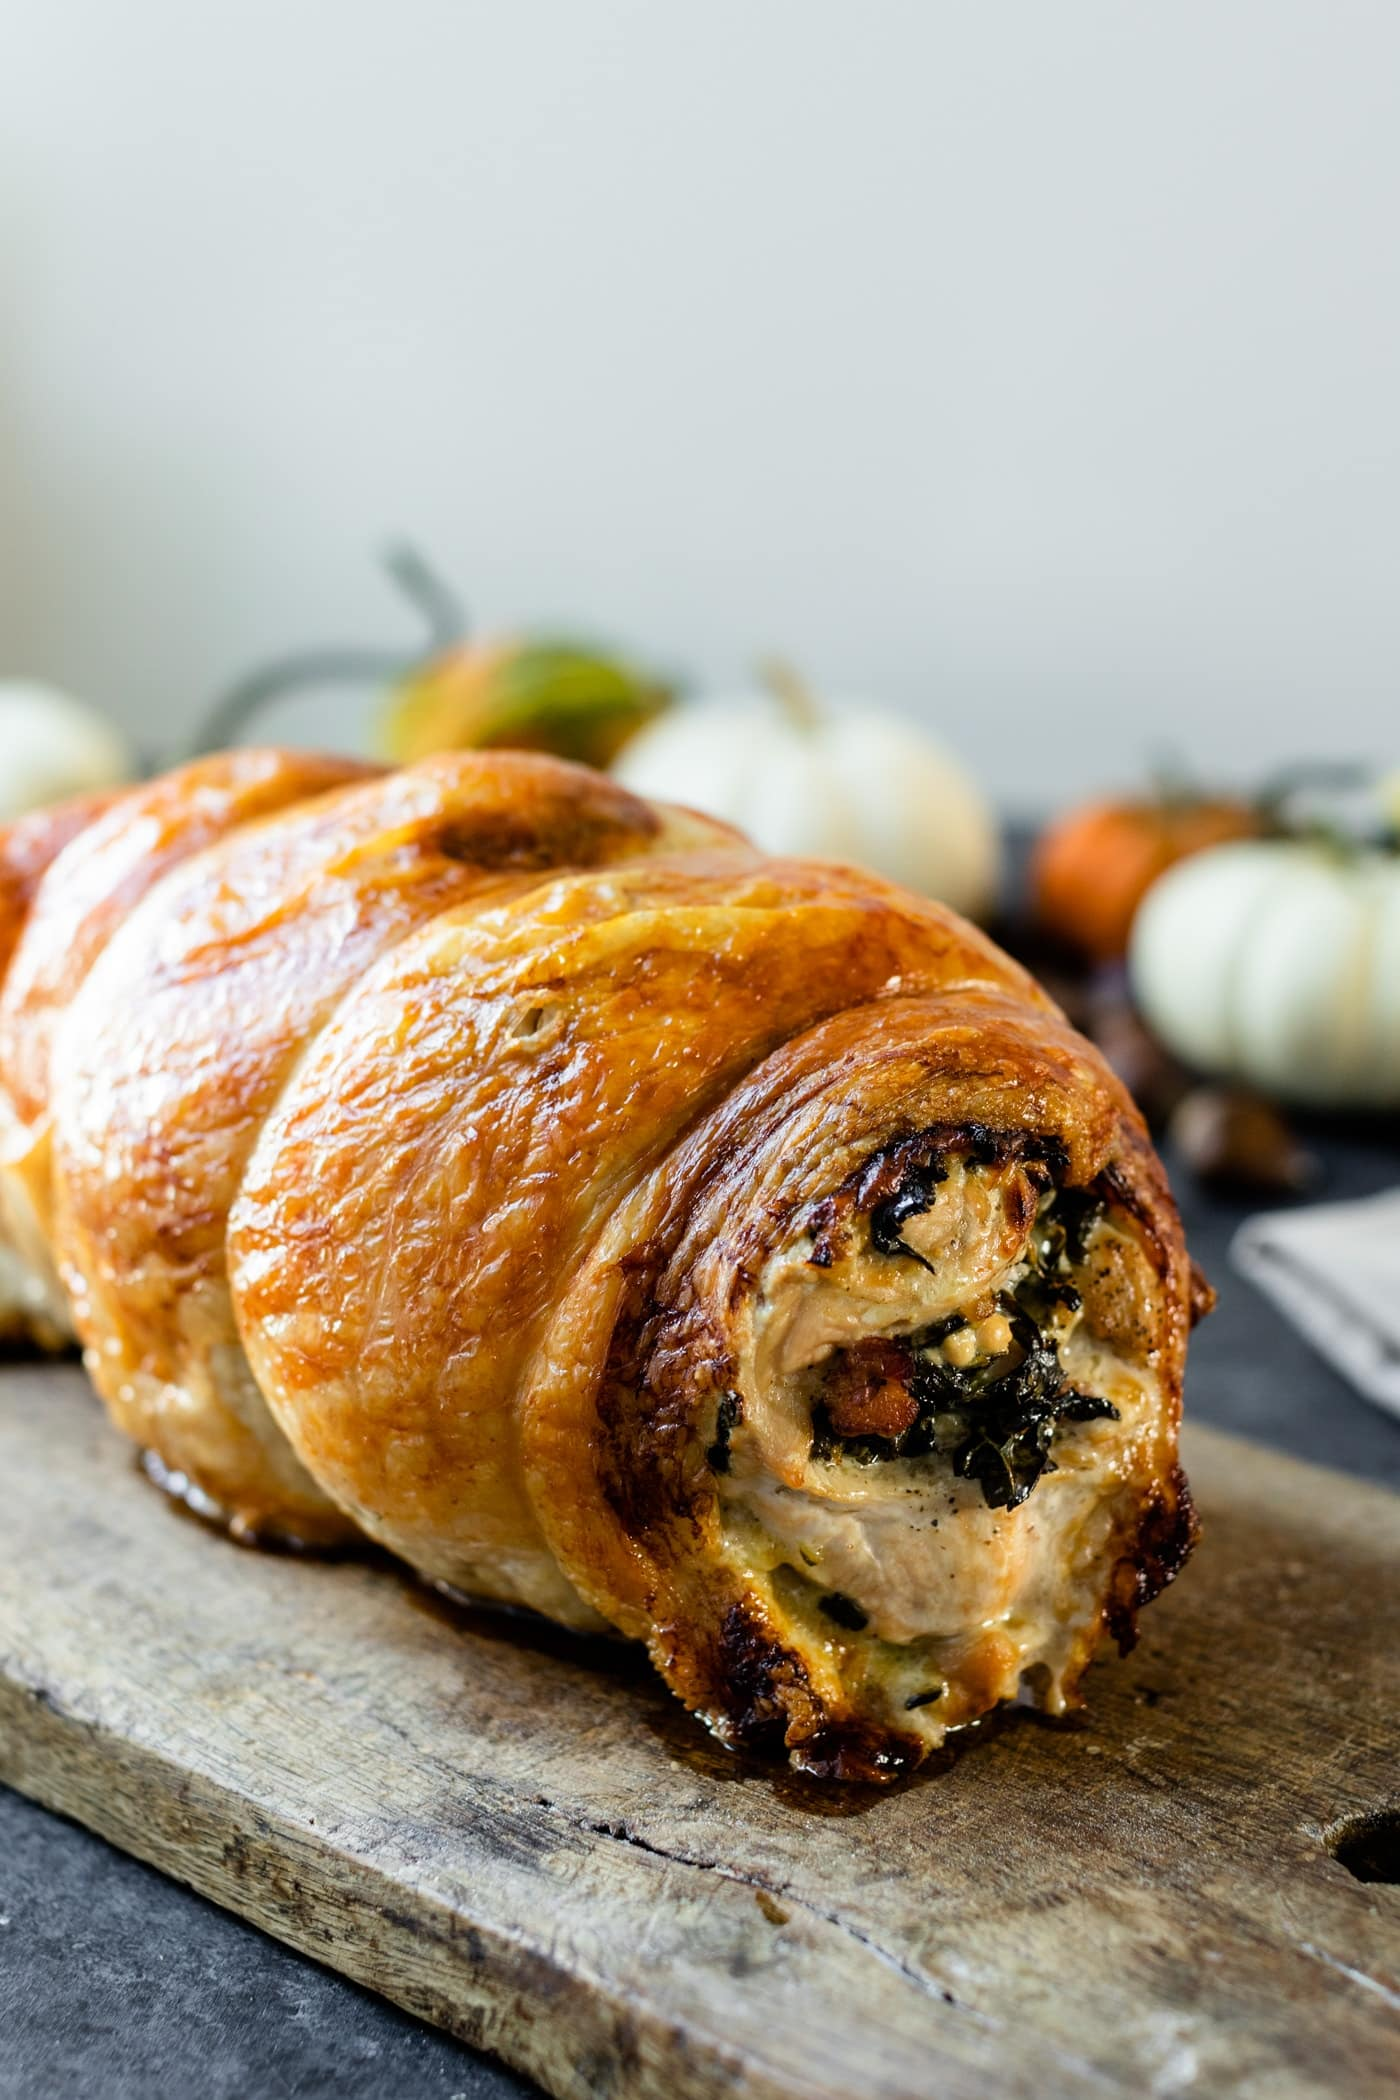 Turkey roulade sitting on wood board with pumpkins and gourds in background on a gray slate surface